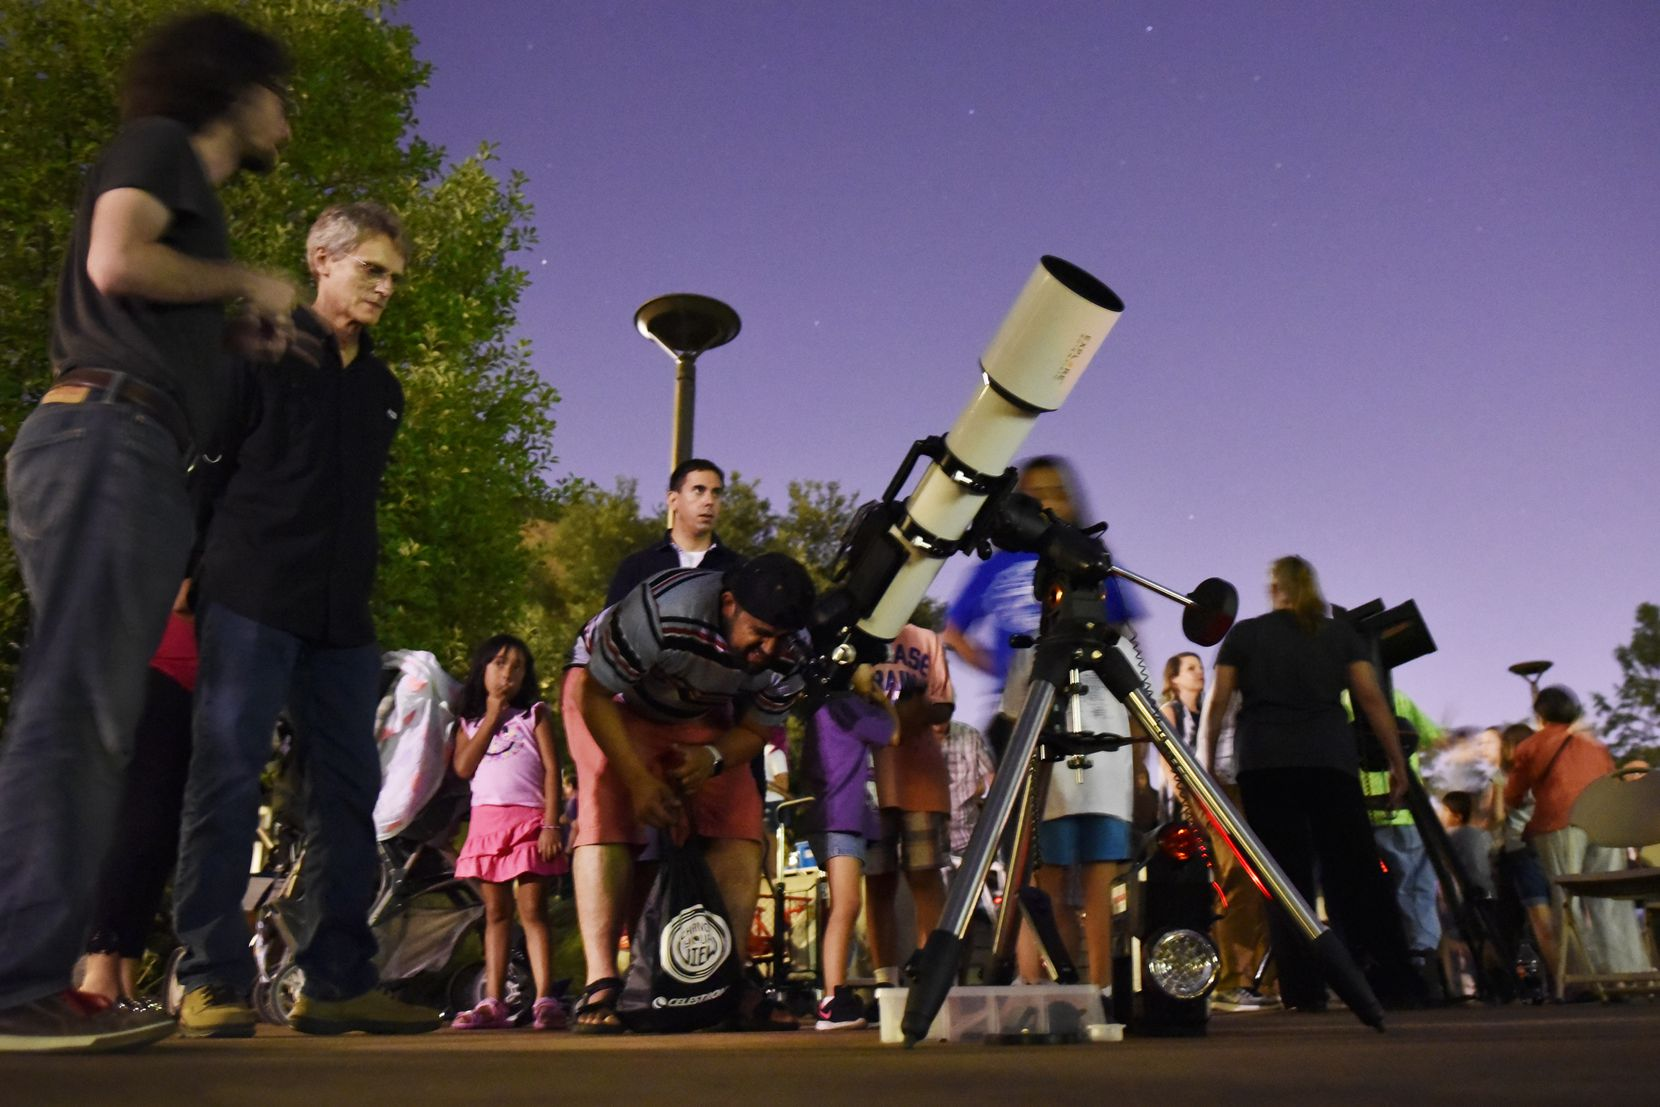 Felipe Cuellar, 36, of Dallas, views the planet Saturn through a telescope during a Mars viewing event hosted by the Texas Astronomical Society of Dallas at Brookhaven College July 31, 2018.